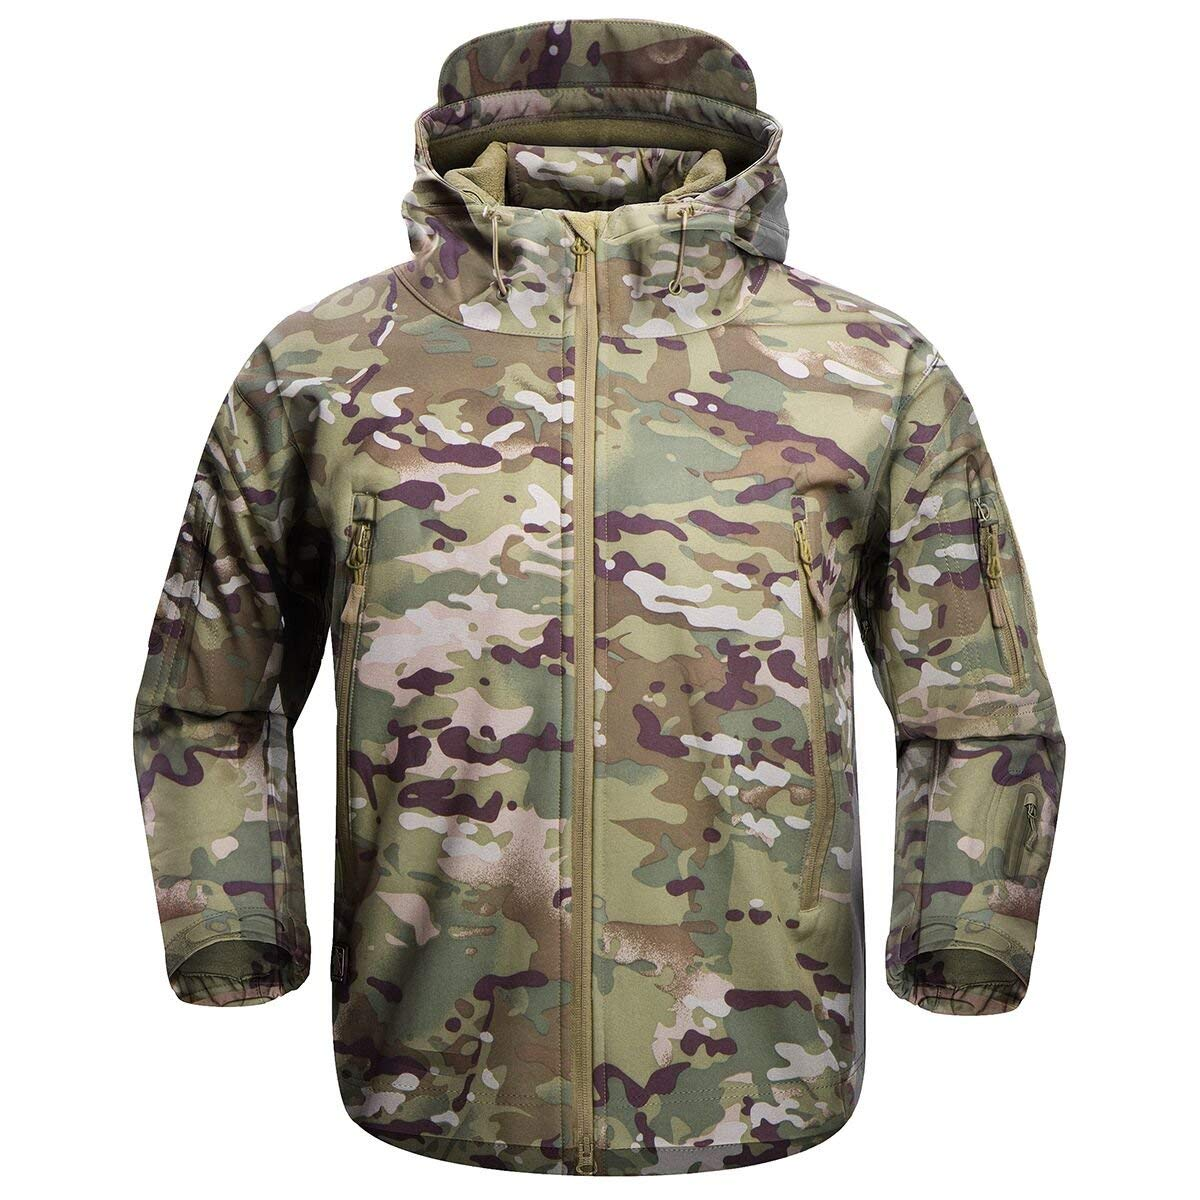 FREE SOLDIER Men's Outdoor Waterproof Soft Shell Hooded Military Tactical Jacket(Multicam Medium)